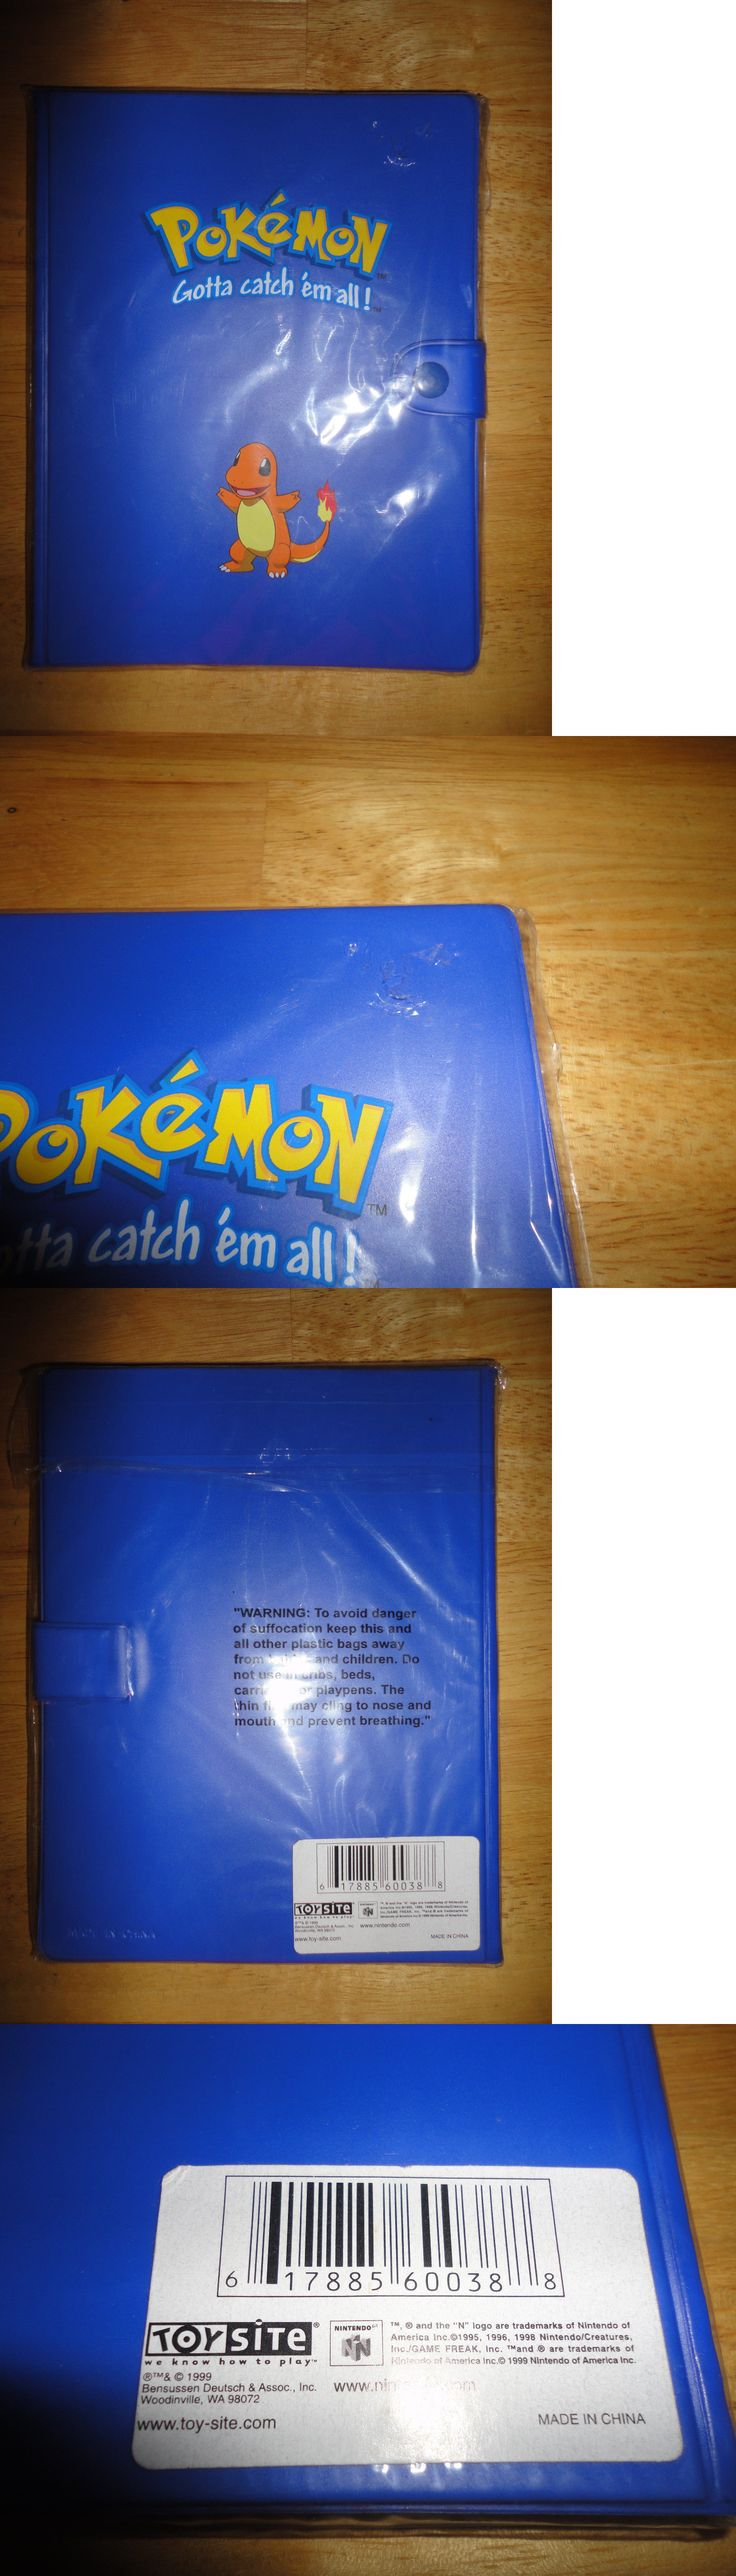 Other Pok mon TCG Items 2608: Vintage 1999 Pokemon Trading Card Game Toy Site Blue Charmander Binder *New* -> BUY IT NOW ONLY: $59.99 on eBay!